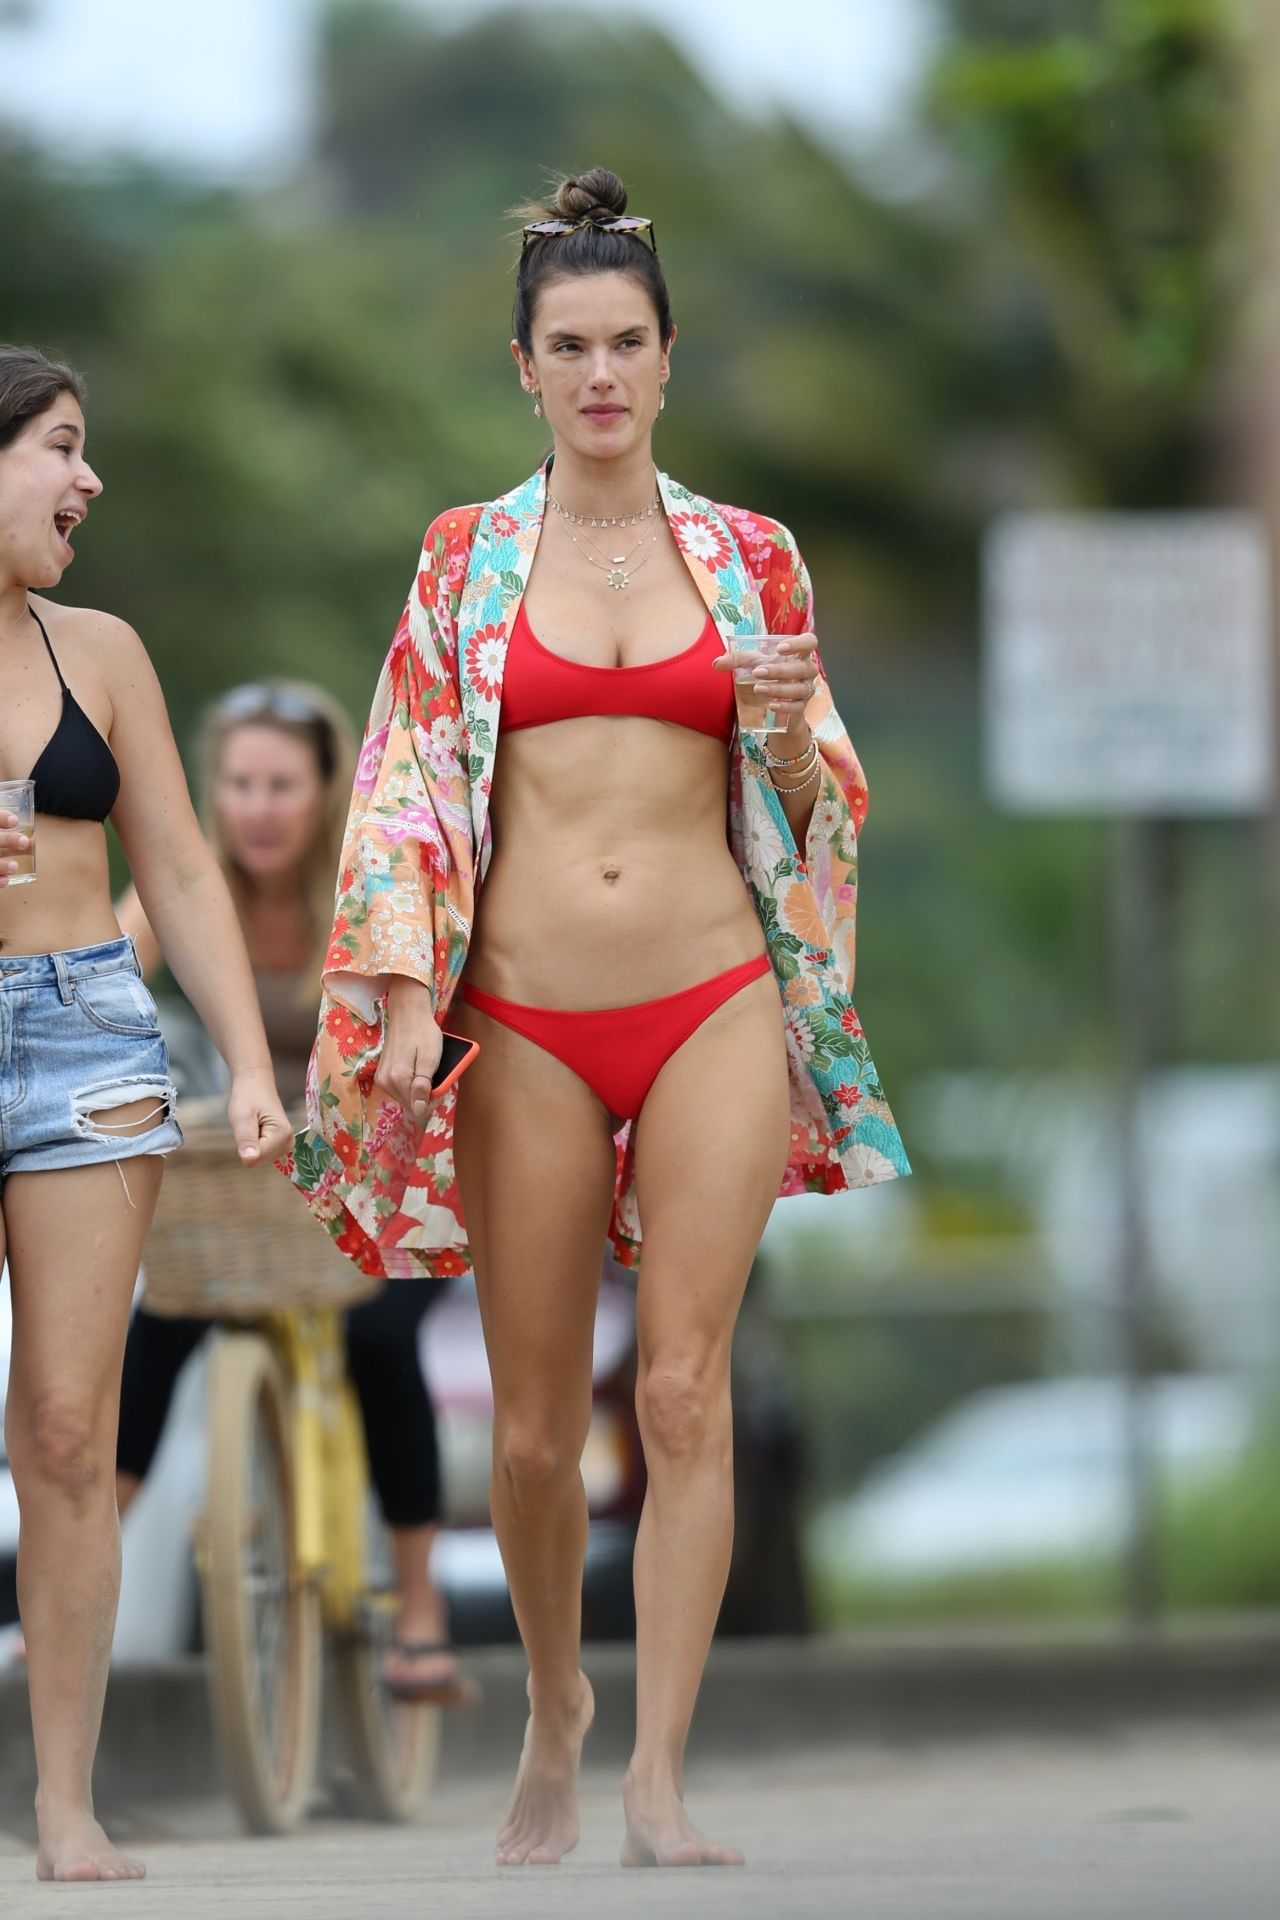 alessandra-ambrosio-in-bikini-at-the-beach-in-hawaii-04-07-2018-3